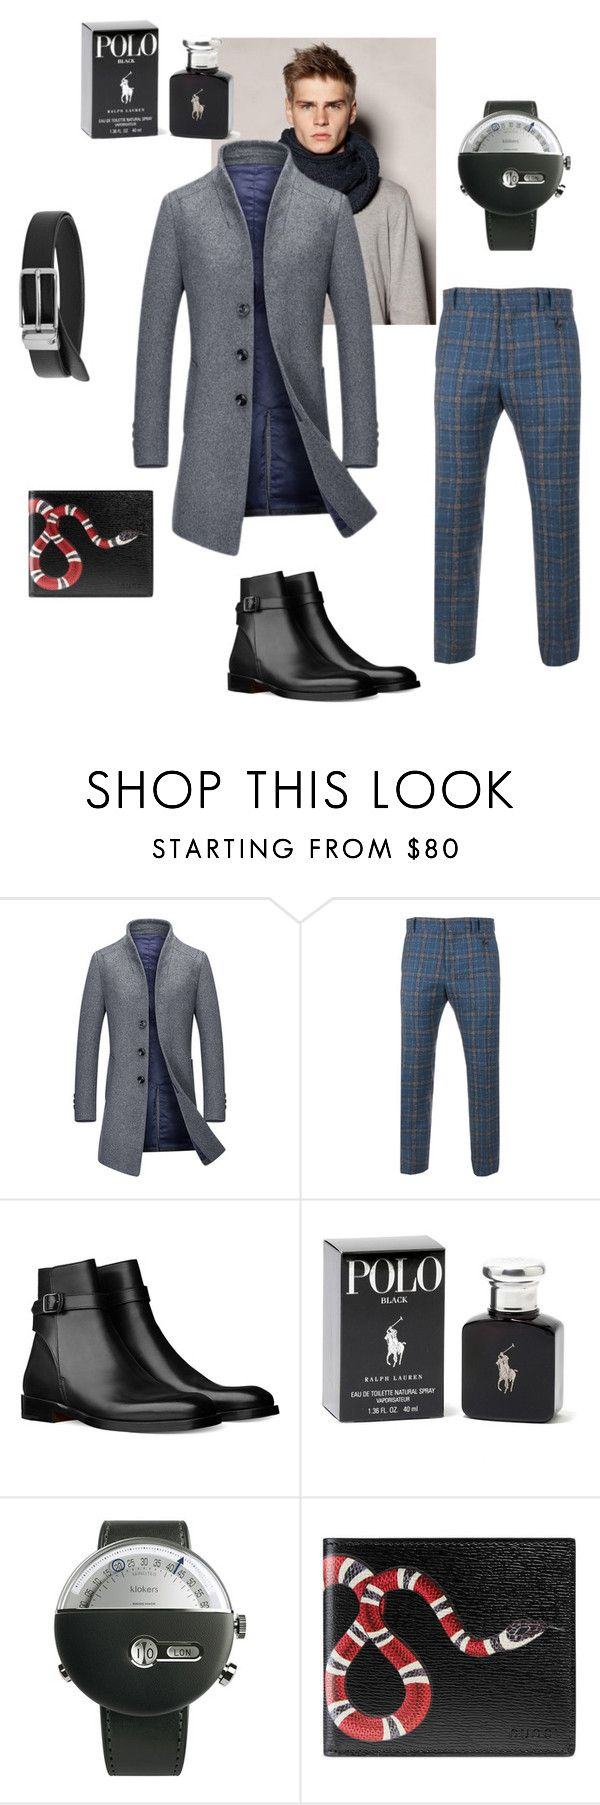 menlook by malishevan on Polyvore featuring Vivienne Westwood Man, Klokers, Gucci, MANGO, Ralph Lauren, men's fashion and menswear